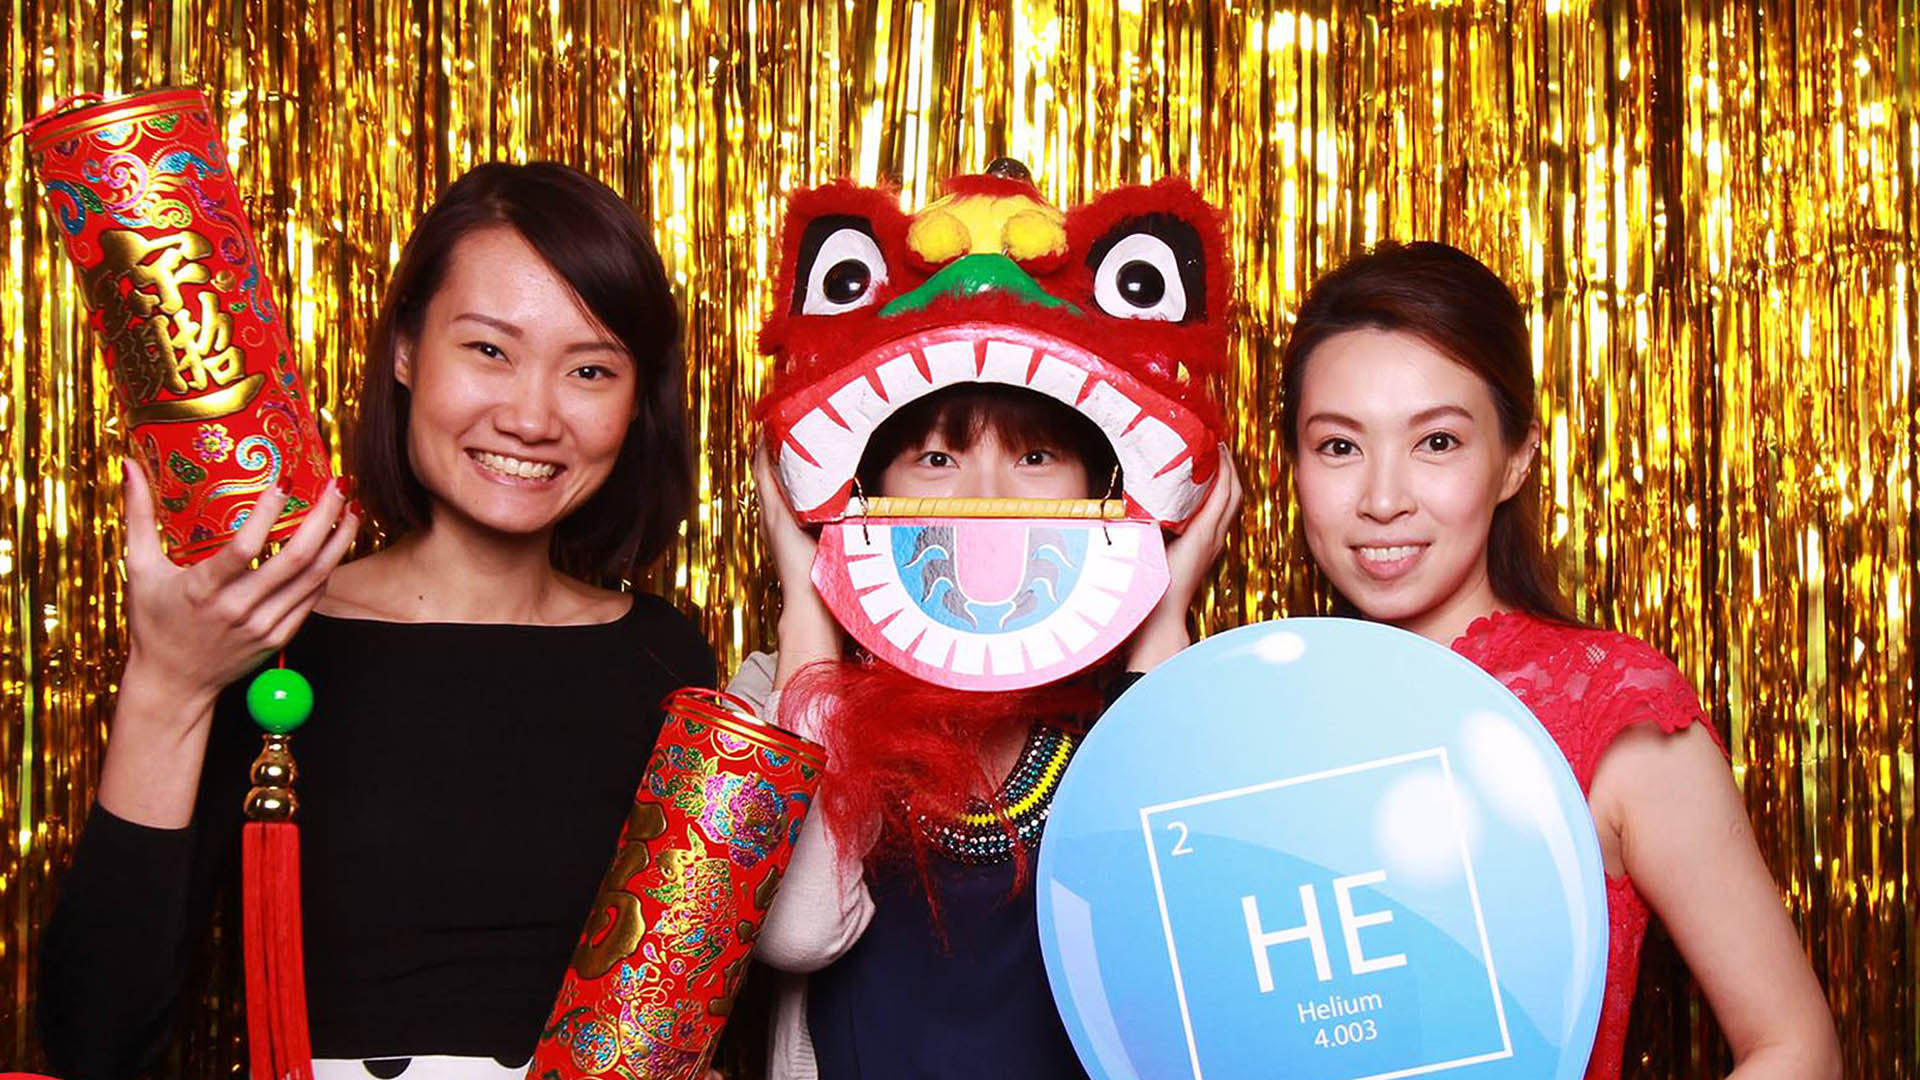 Fourstops • Singapore Photobooth • HGST Lo Hei Photobooth